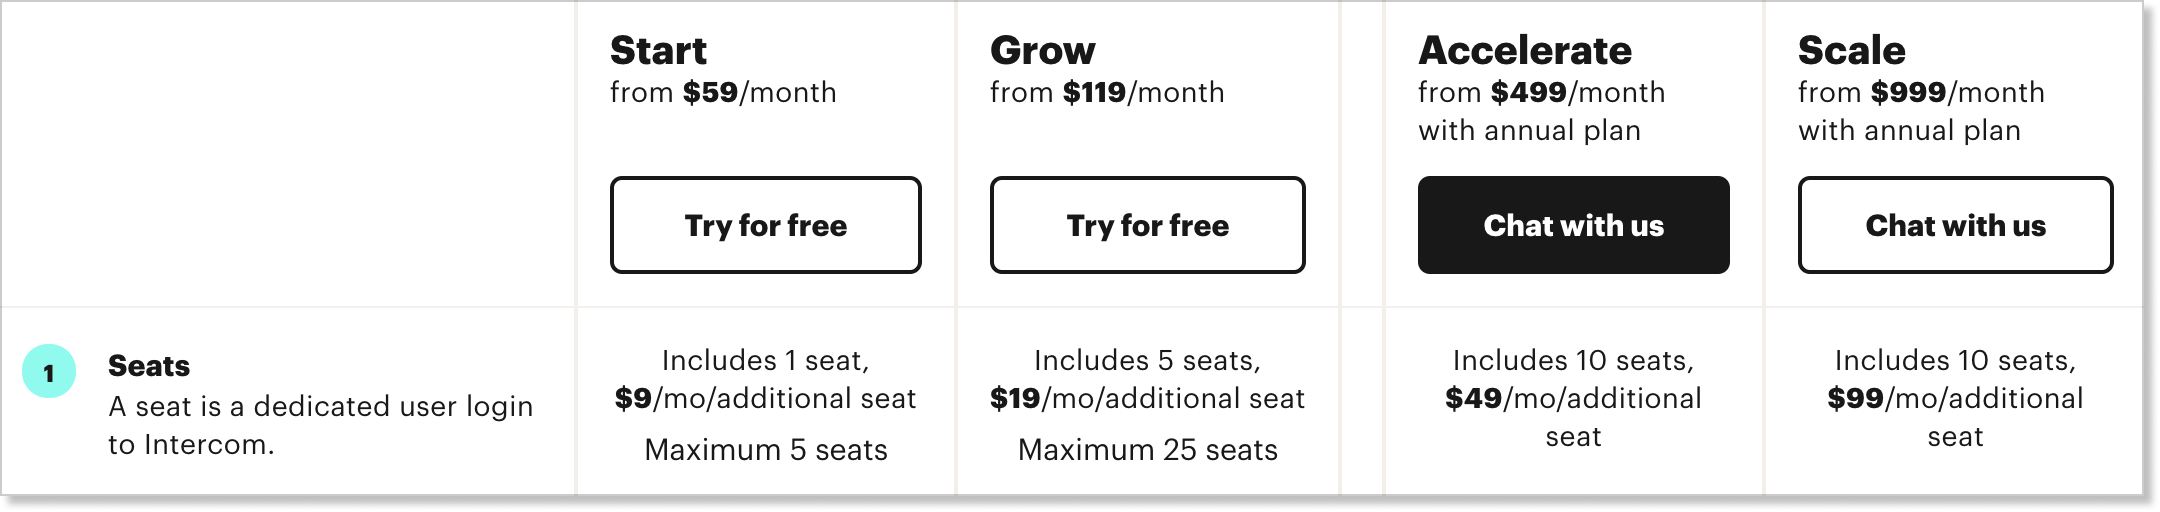 Intercom pricing: charges per seat